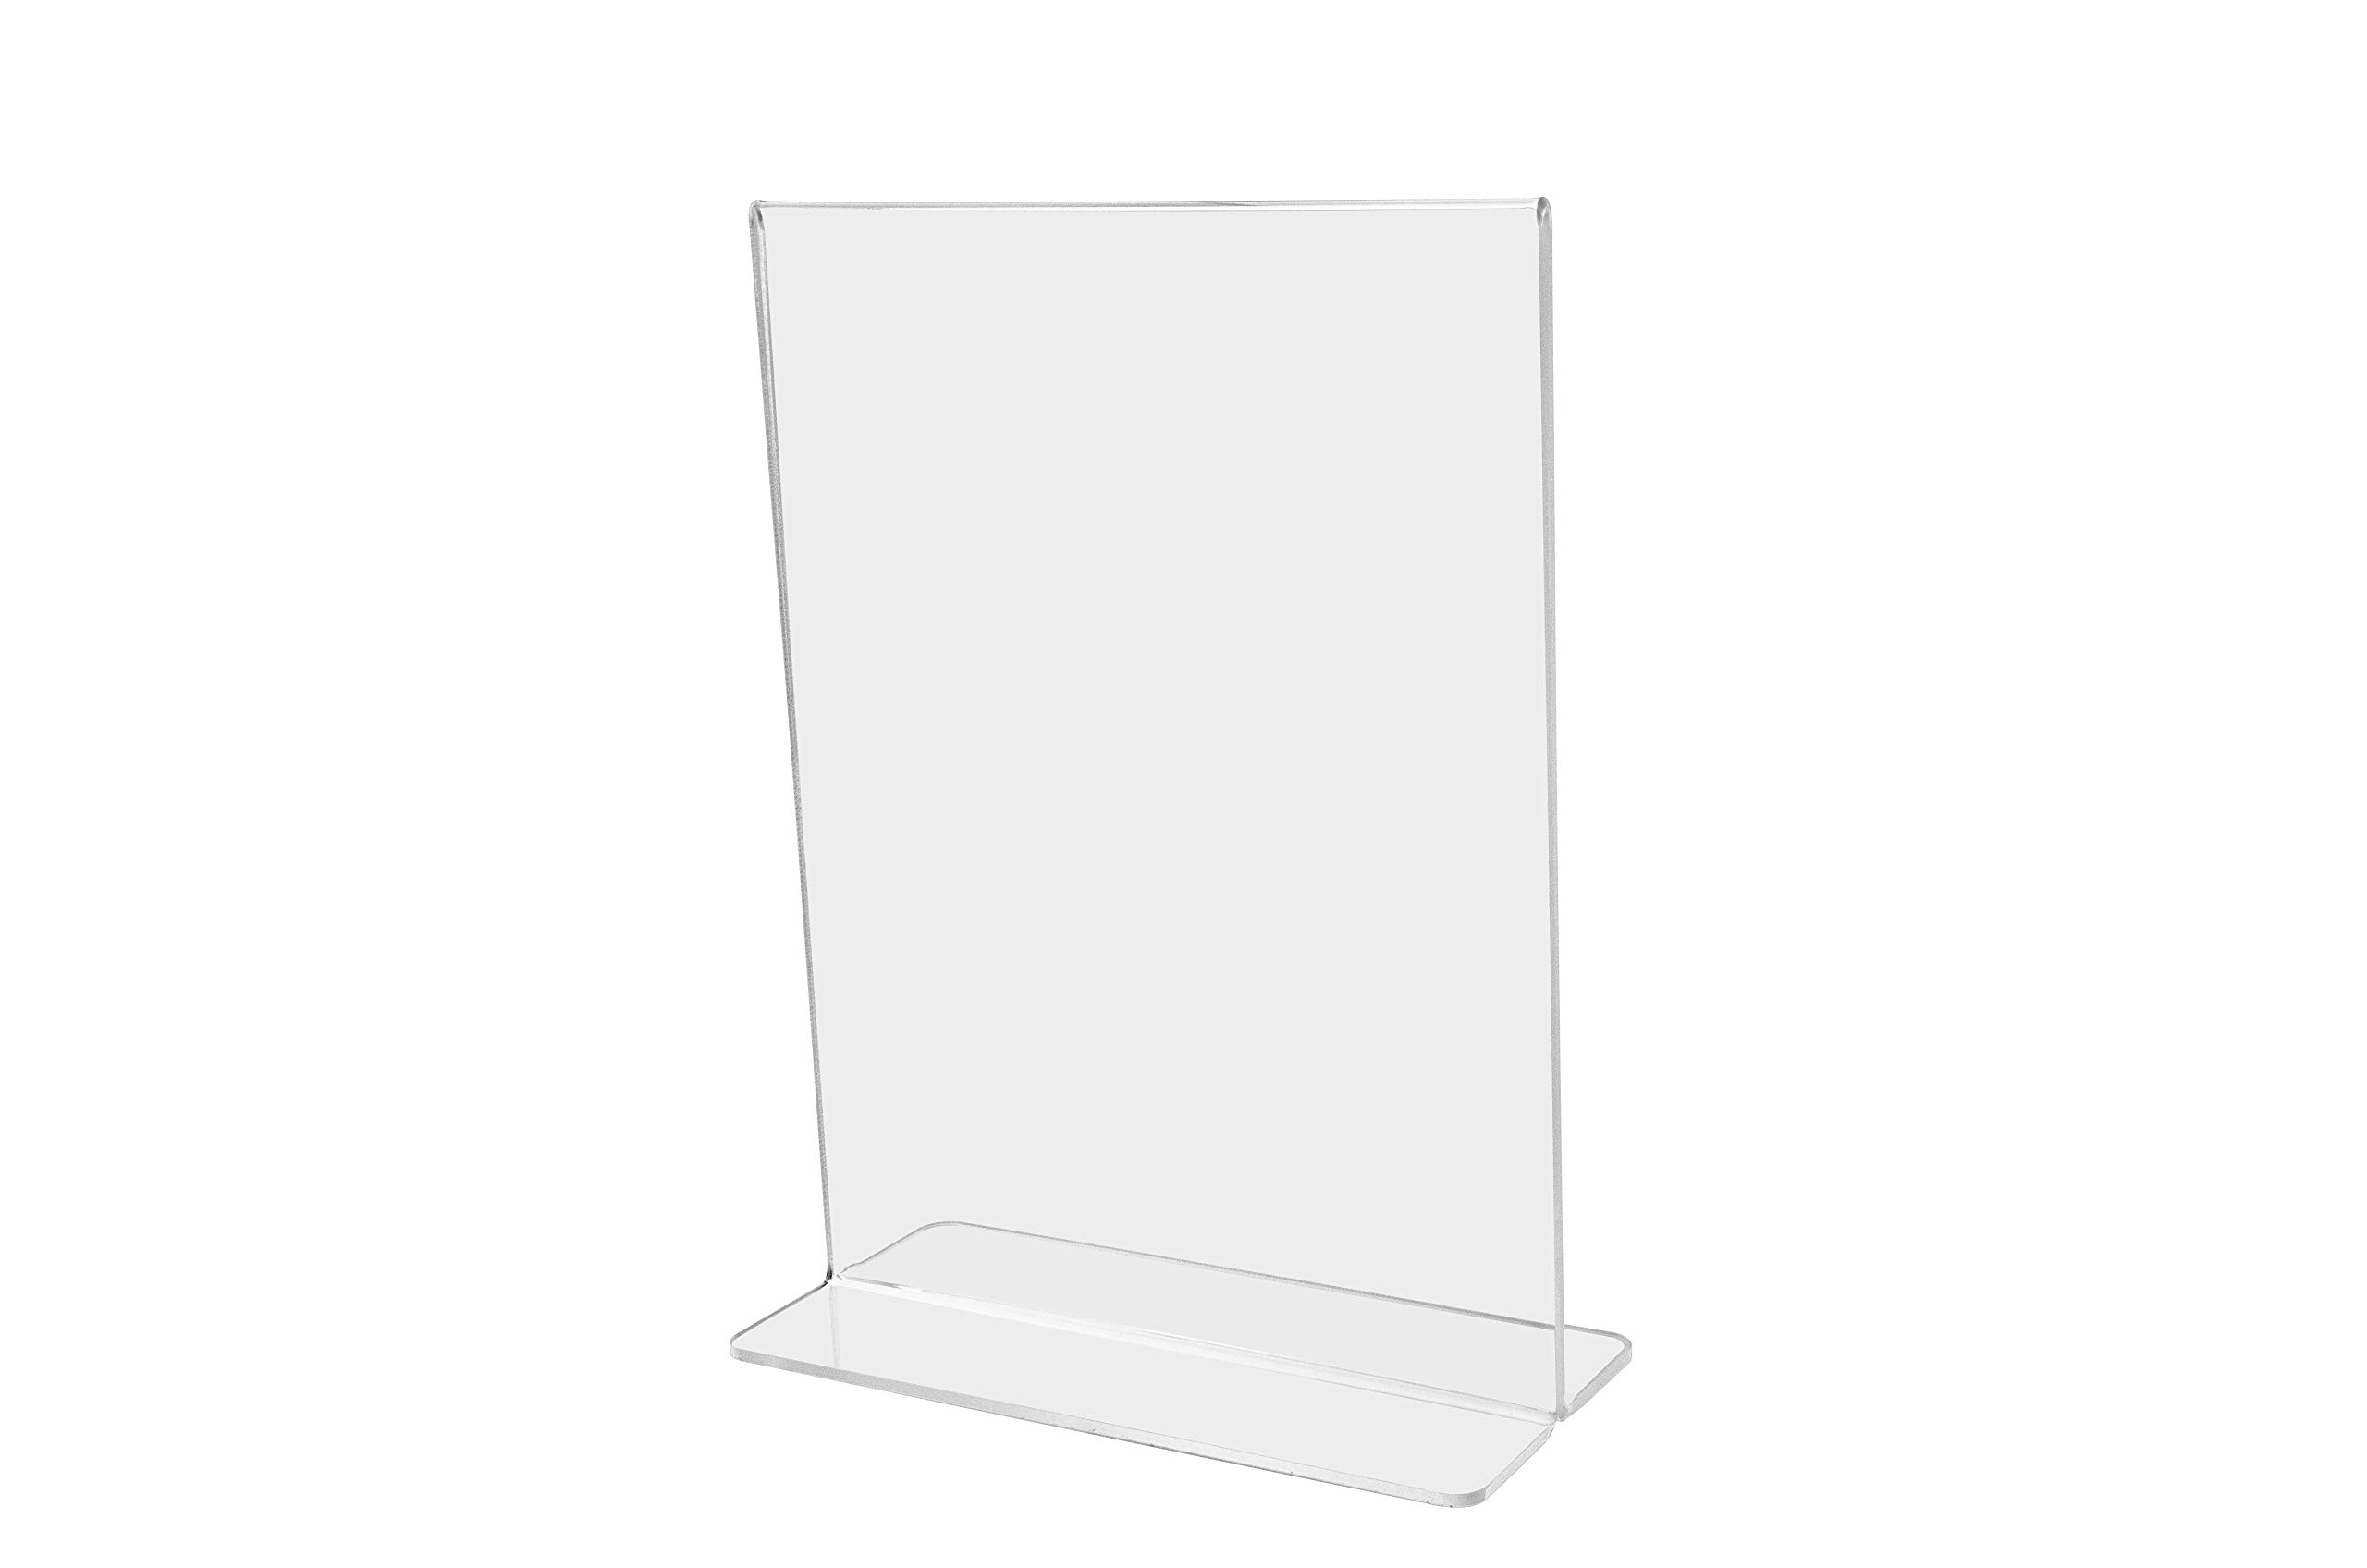 Marketing Holders Sign Holder Literature Flyer Poster Frame Letter Notice Menu Pricing Deli Table Tent Countertop Expo Event Display Stand Double Sided Bottom Loading 8'' w x 10'' h Pack of 24